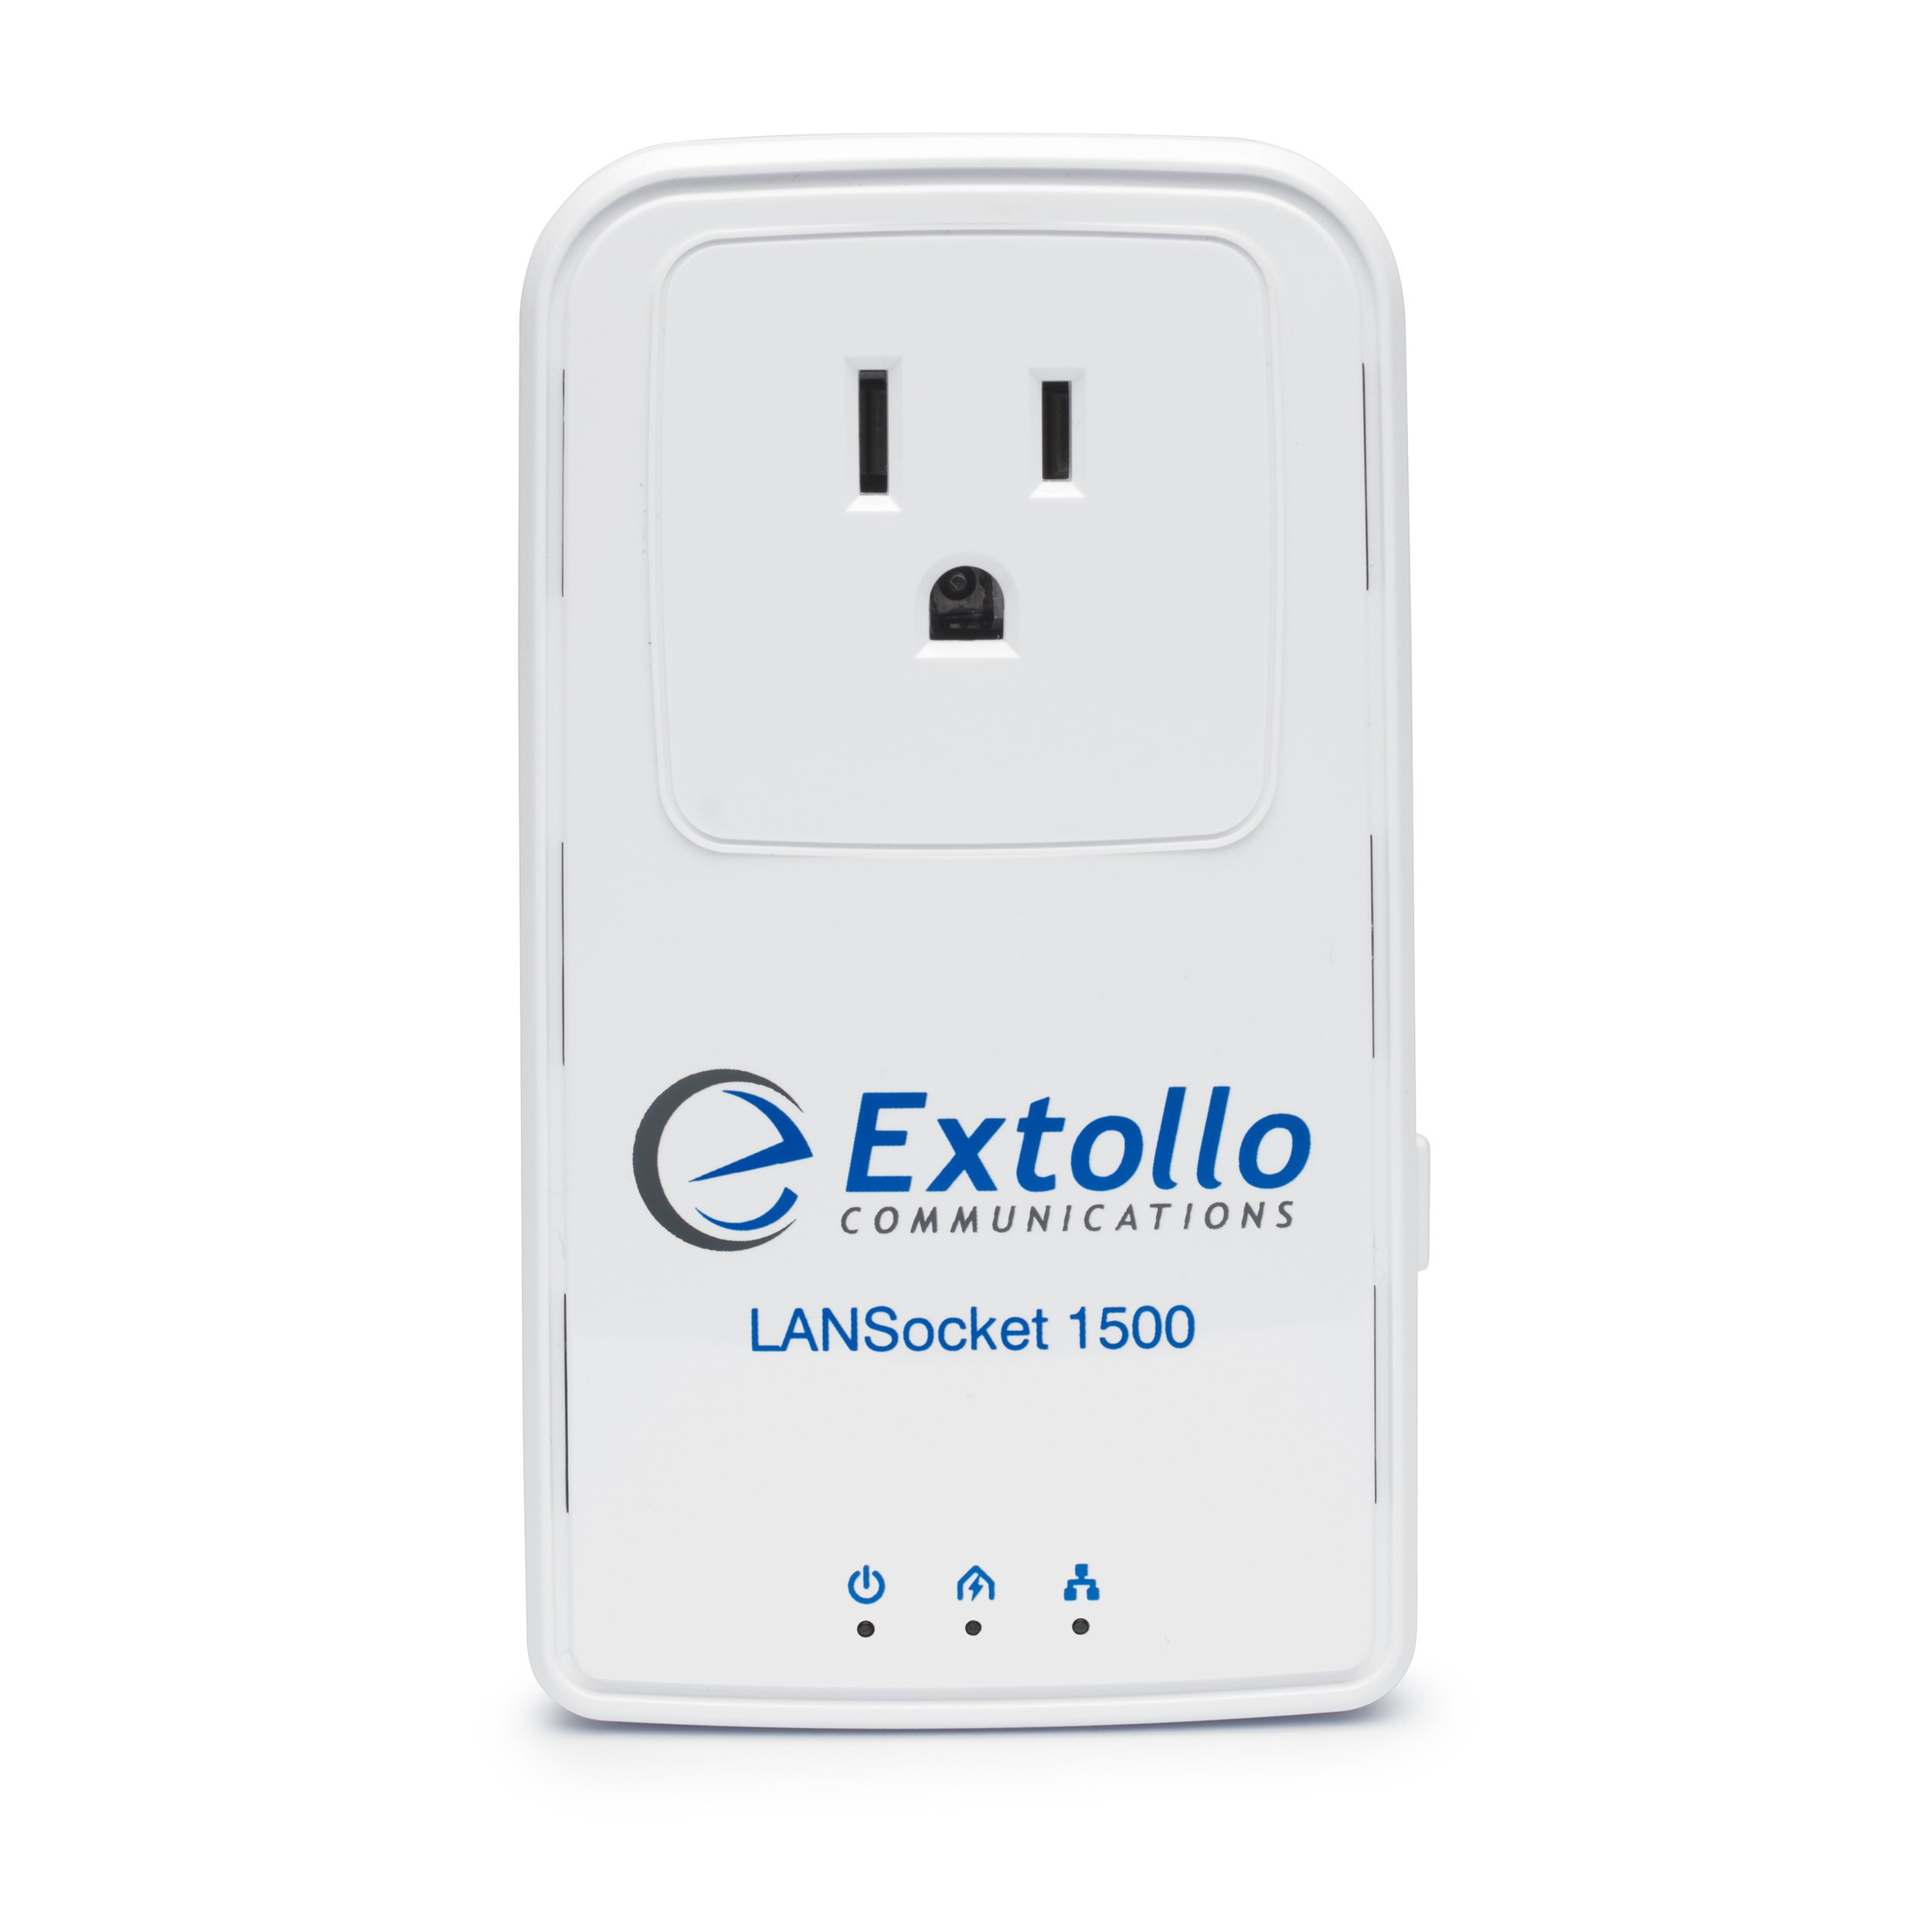 Extollo Ethernet Powerline LANSocket 1500 HomePlug AV2 MIMO 2 Gbps Adapter Kit by Extollo Communications